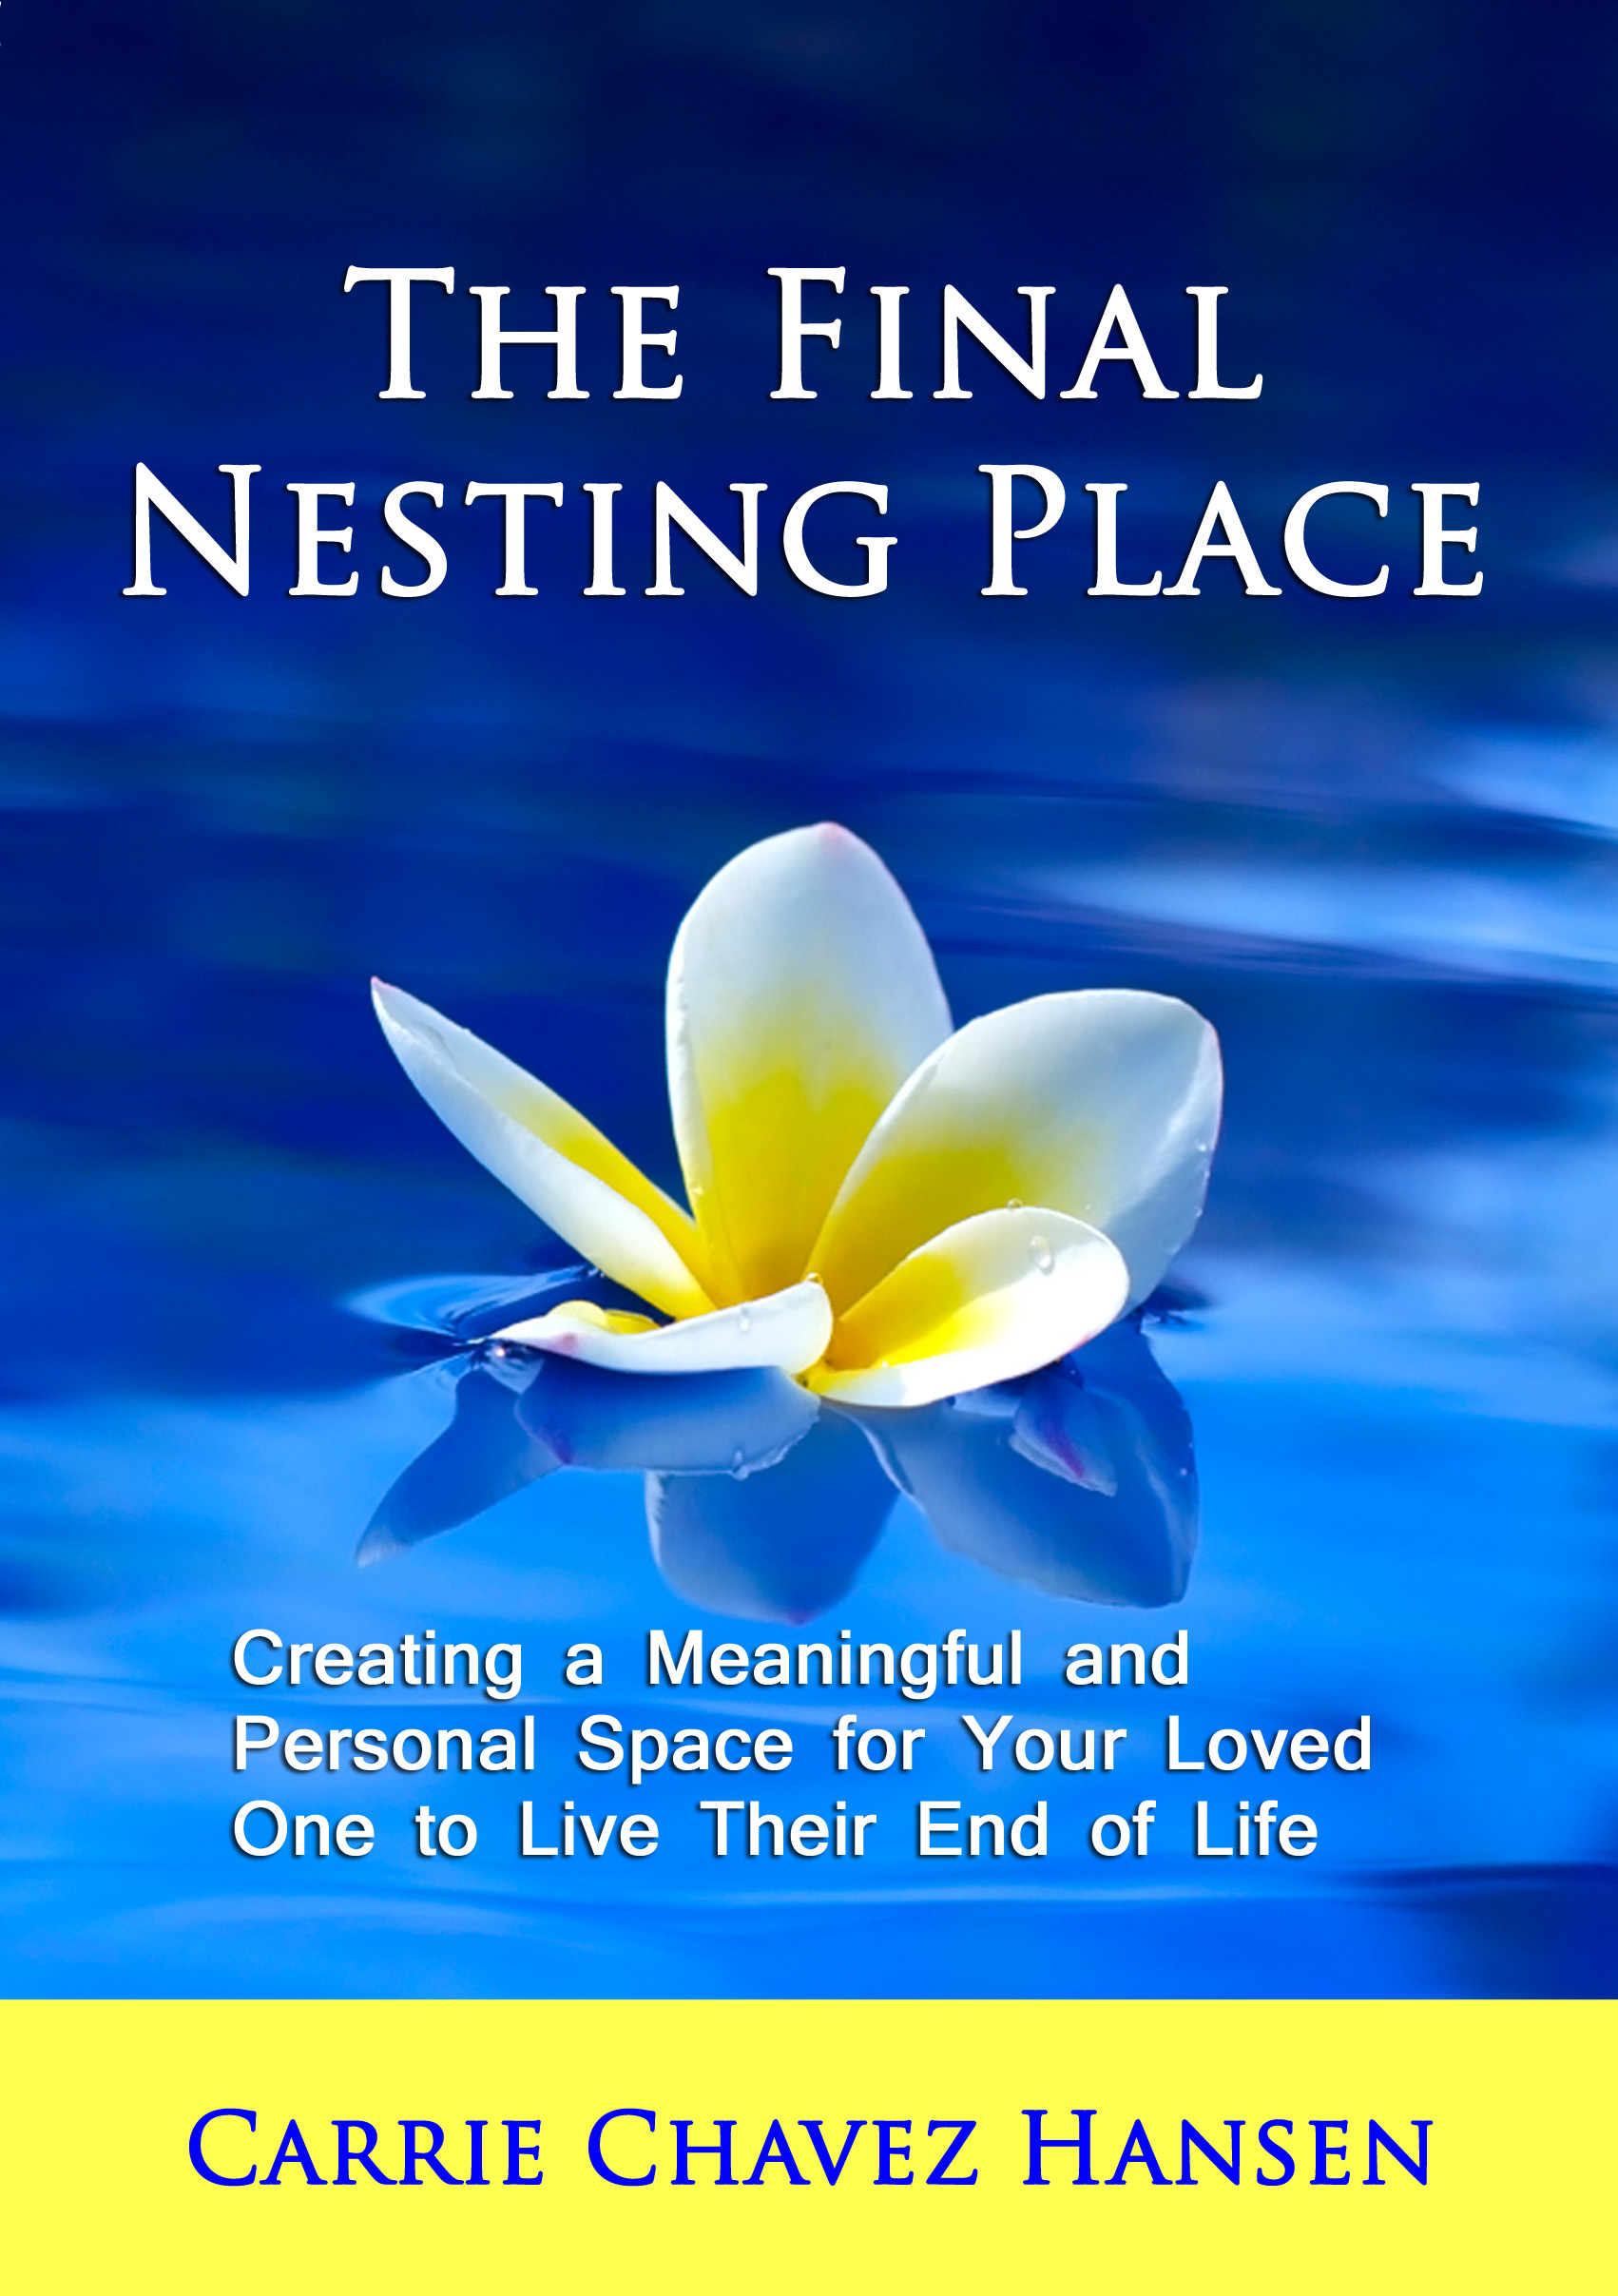 The Final Nesting Place